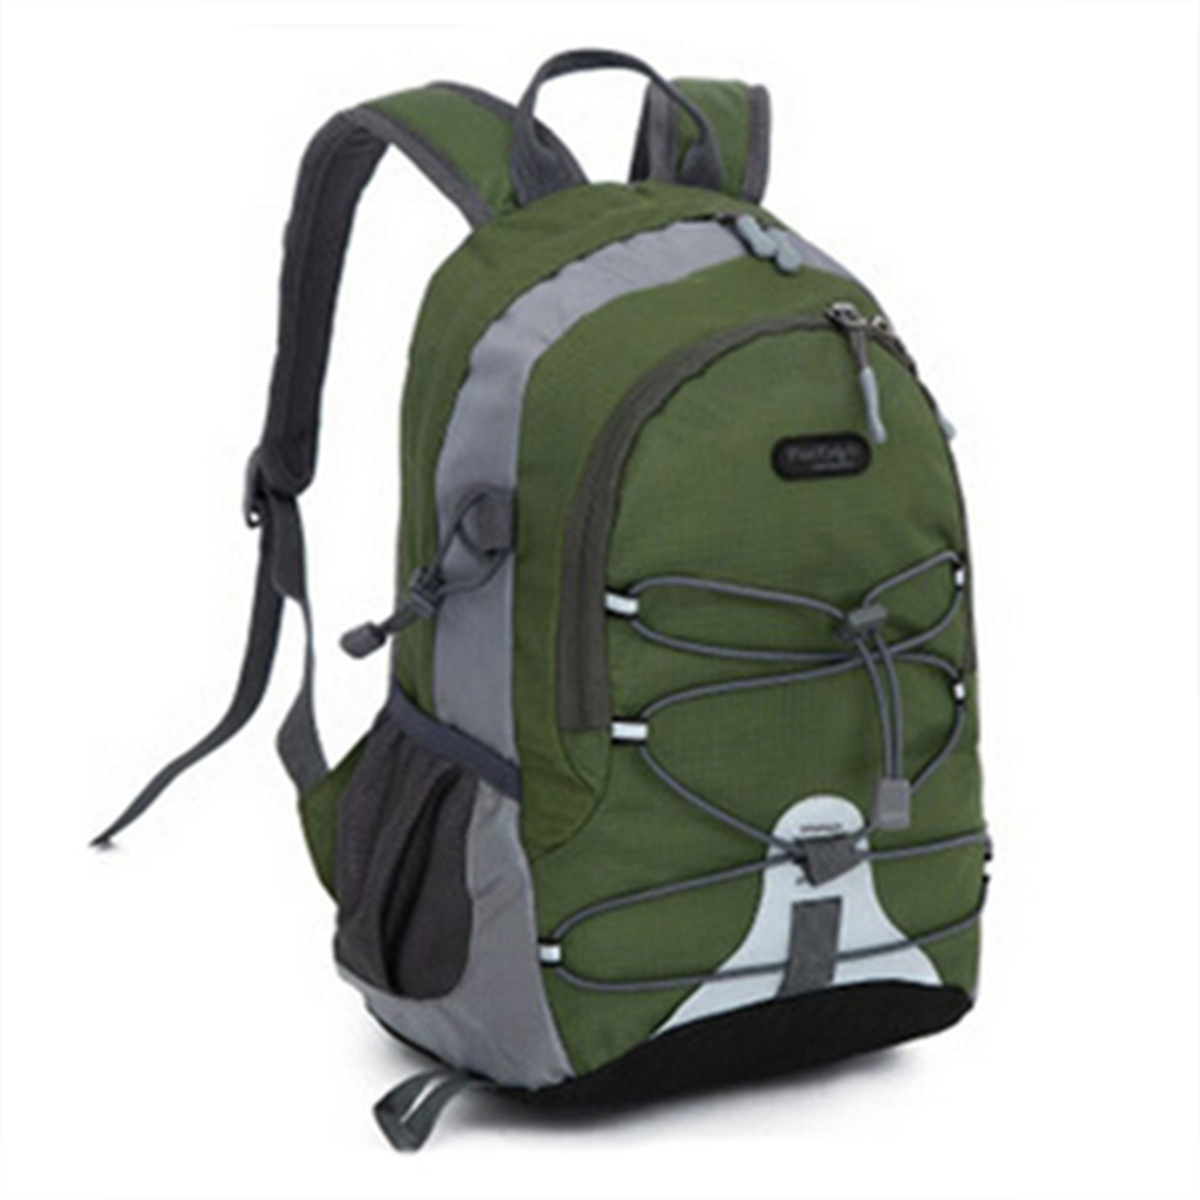 Free shipping BOTH ways on boys backpacks, from our vast selection of styles. Fast delivery, and 24/7/ real-person service with a smile. Click or call